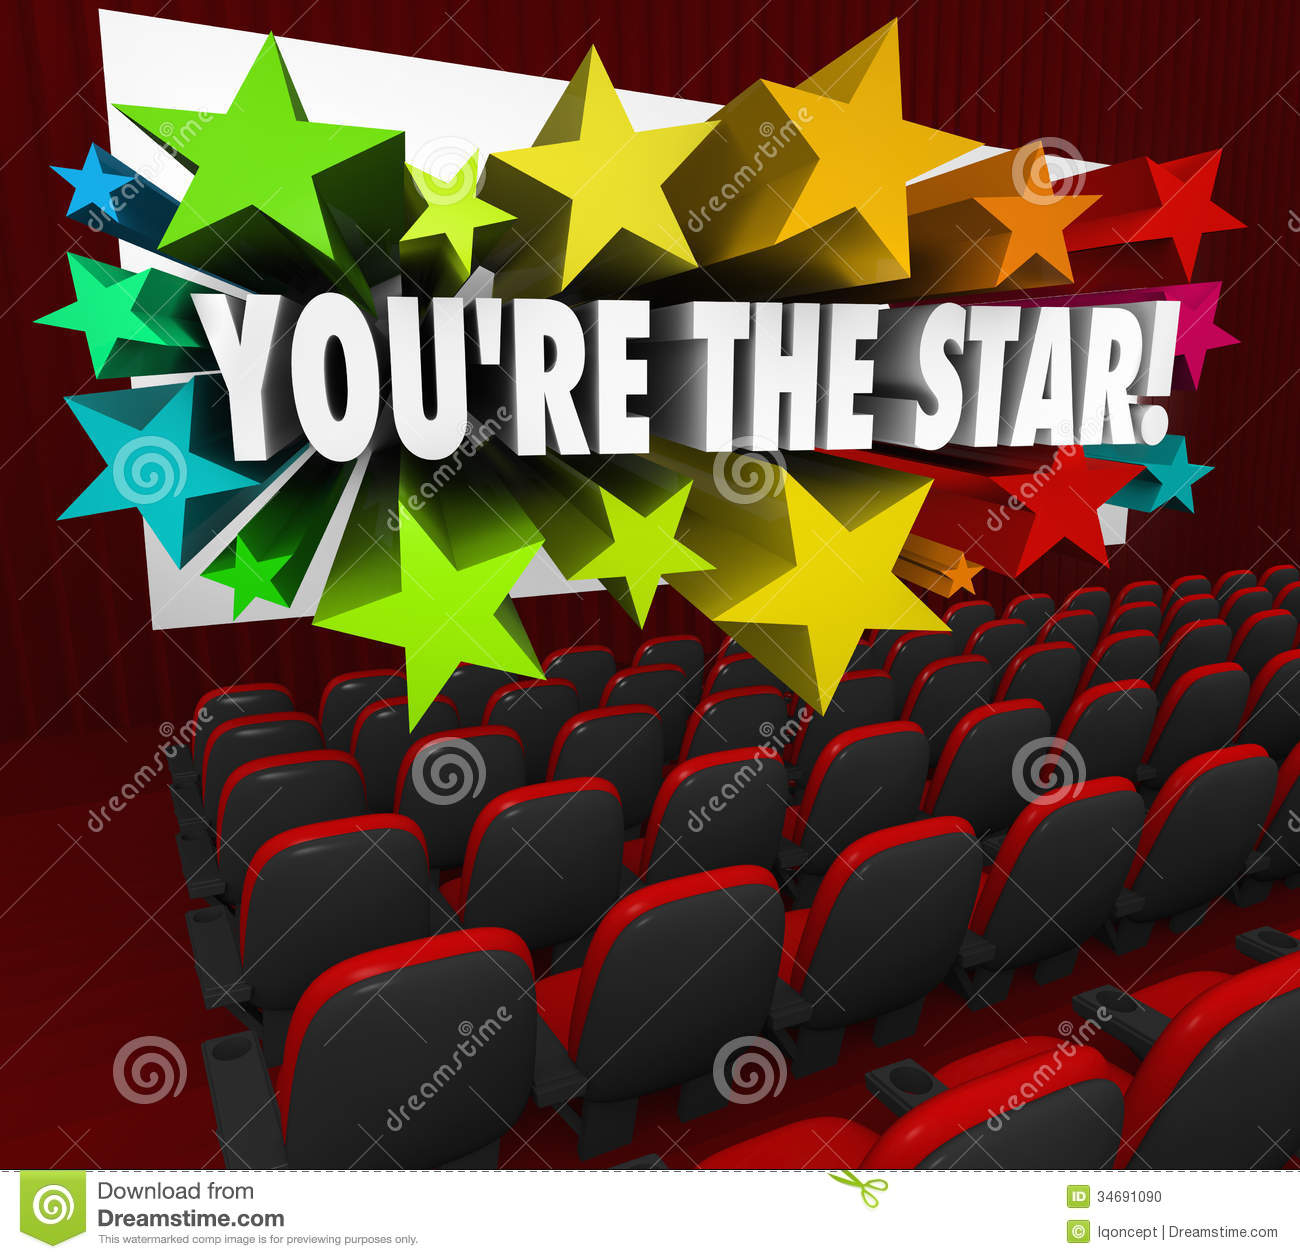 You're The Star Movie Theatre Screen Film Acting Stock Photo.